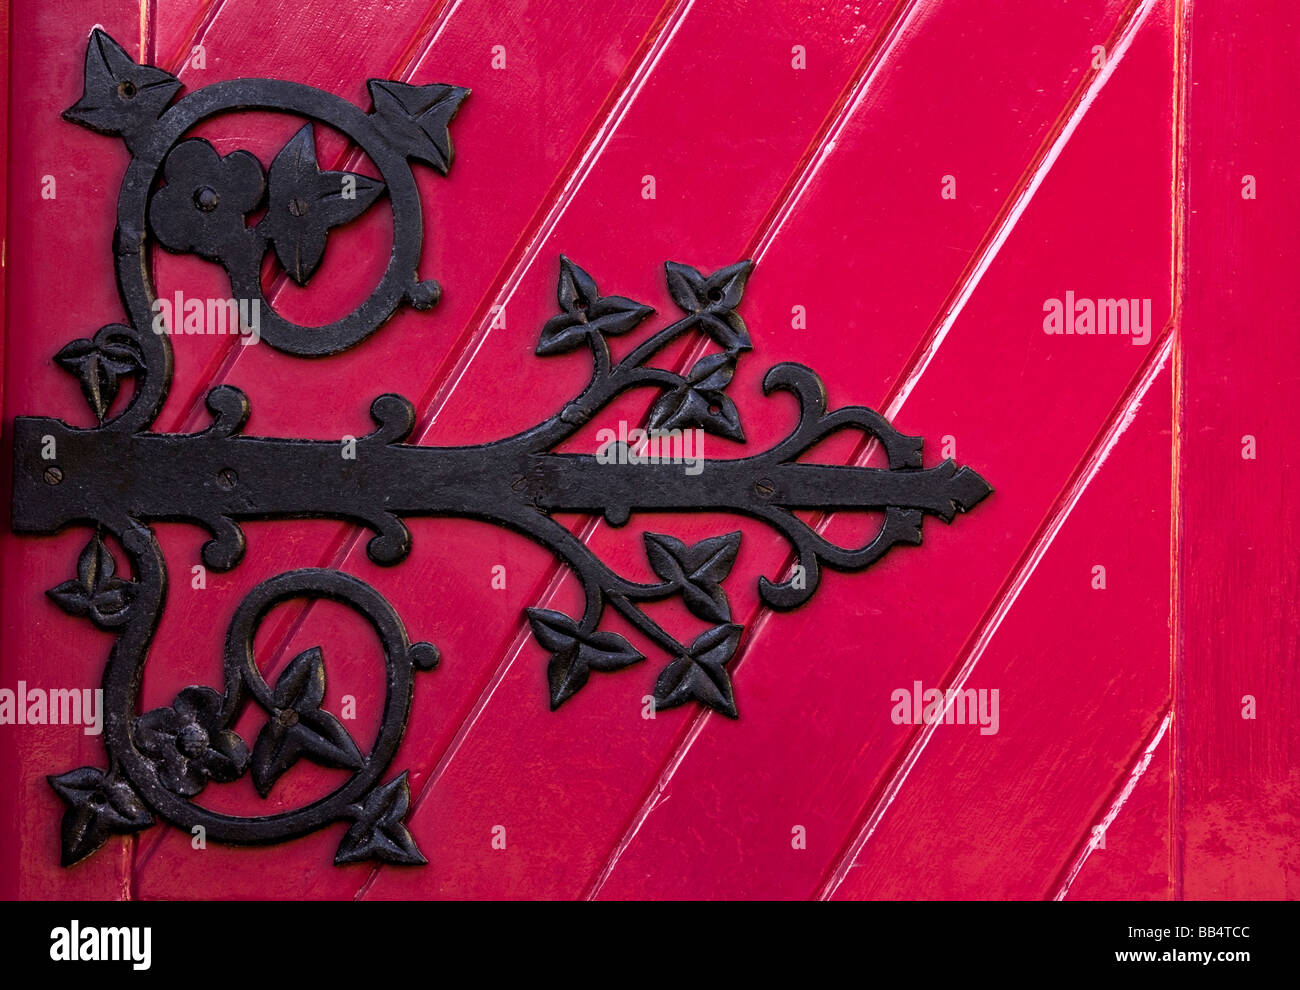 Europe, Ireland, Ennis. A decorative black hinge on a bright red door of the new Franciscan Friary for monastics. - Stock Image